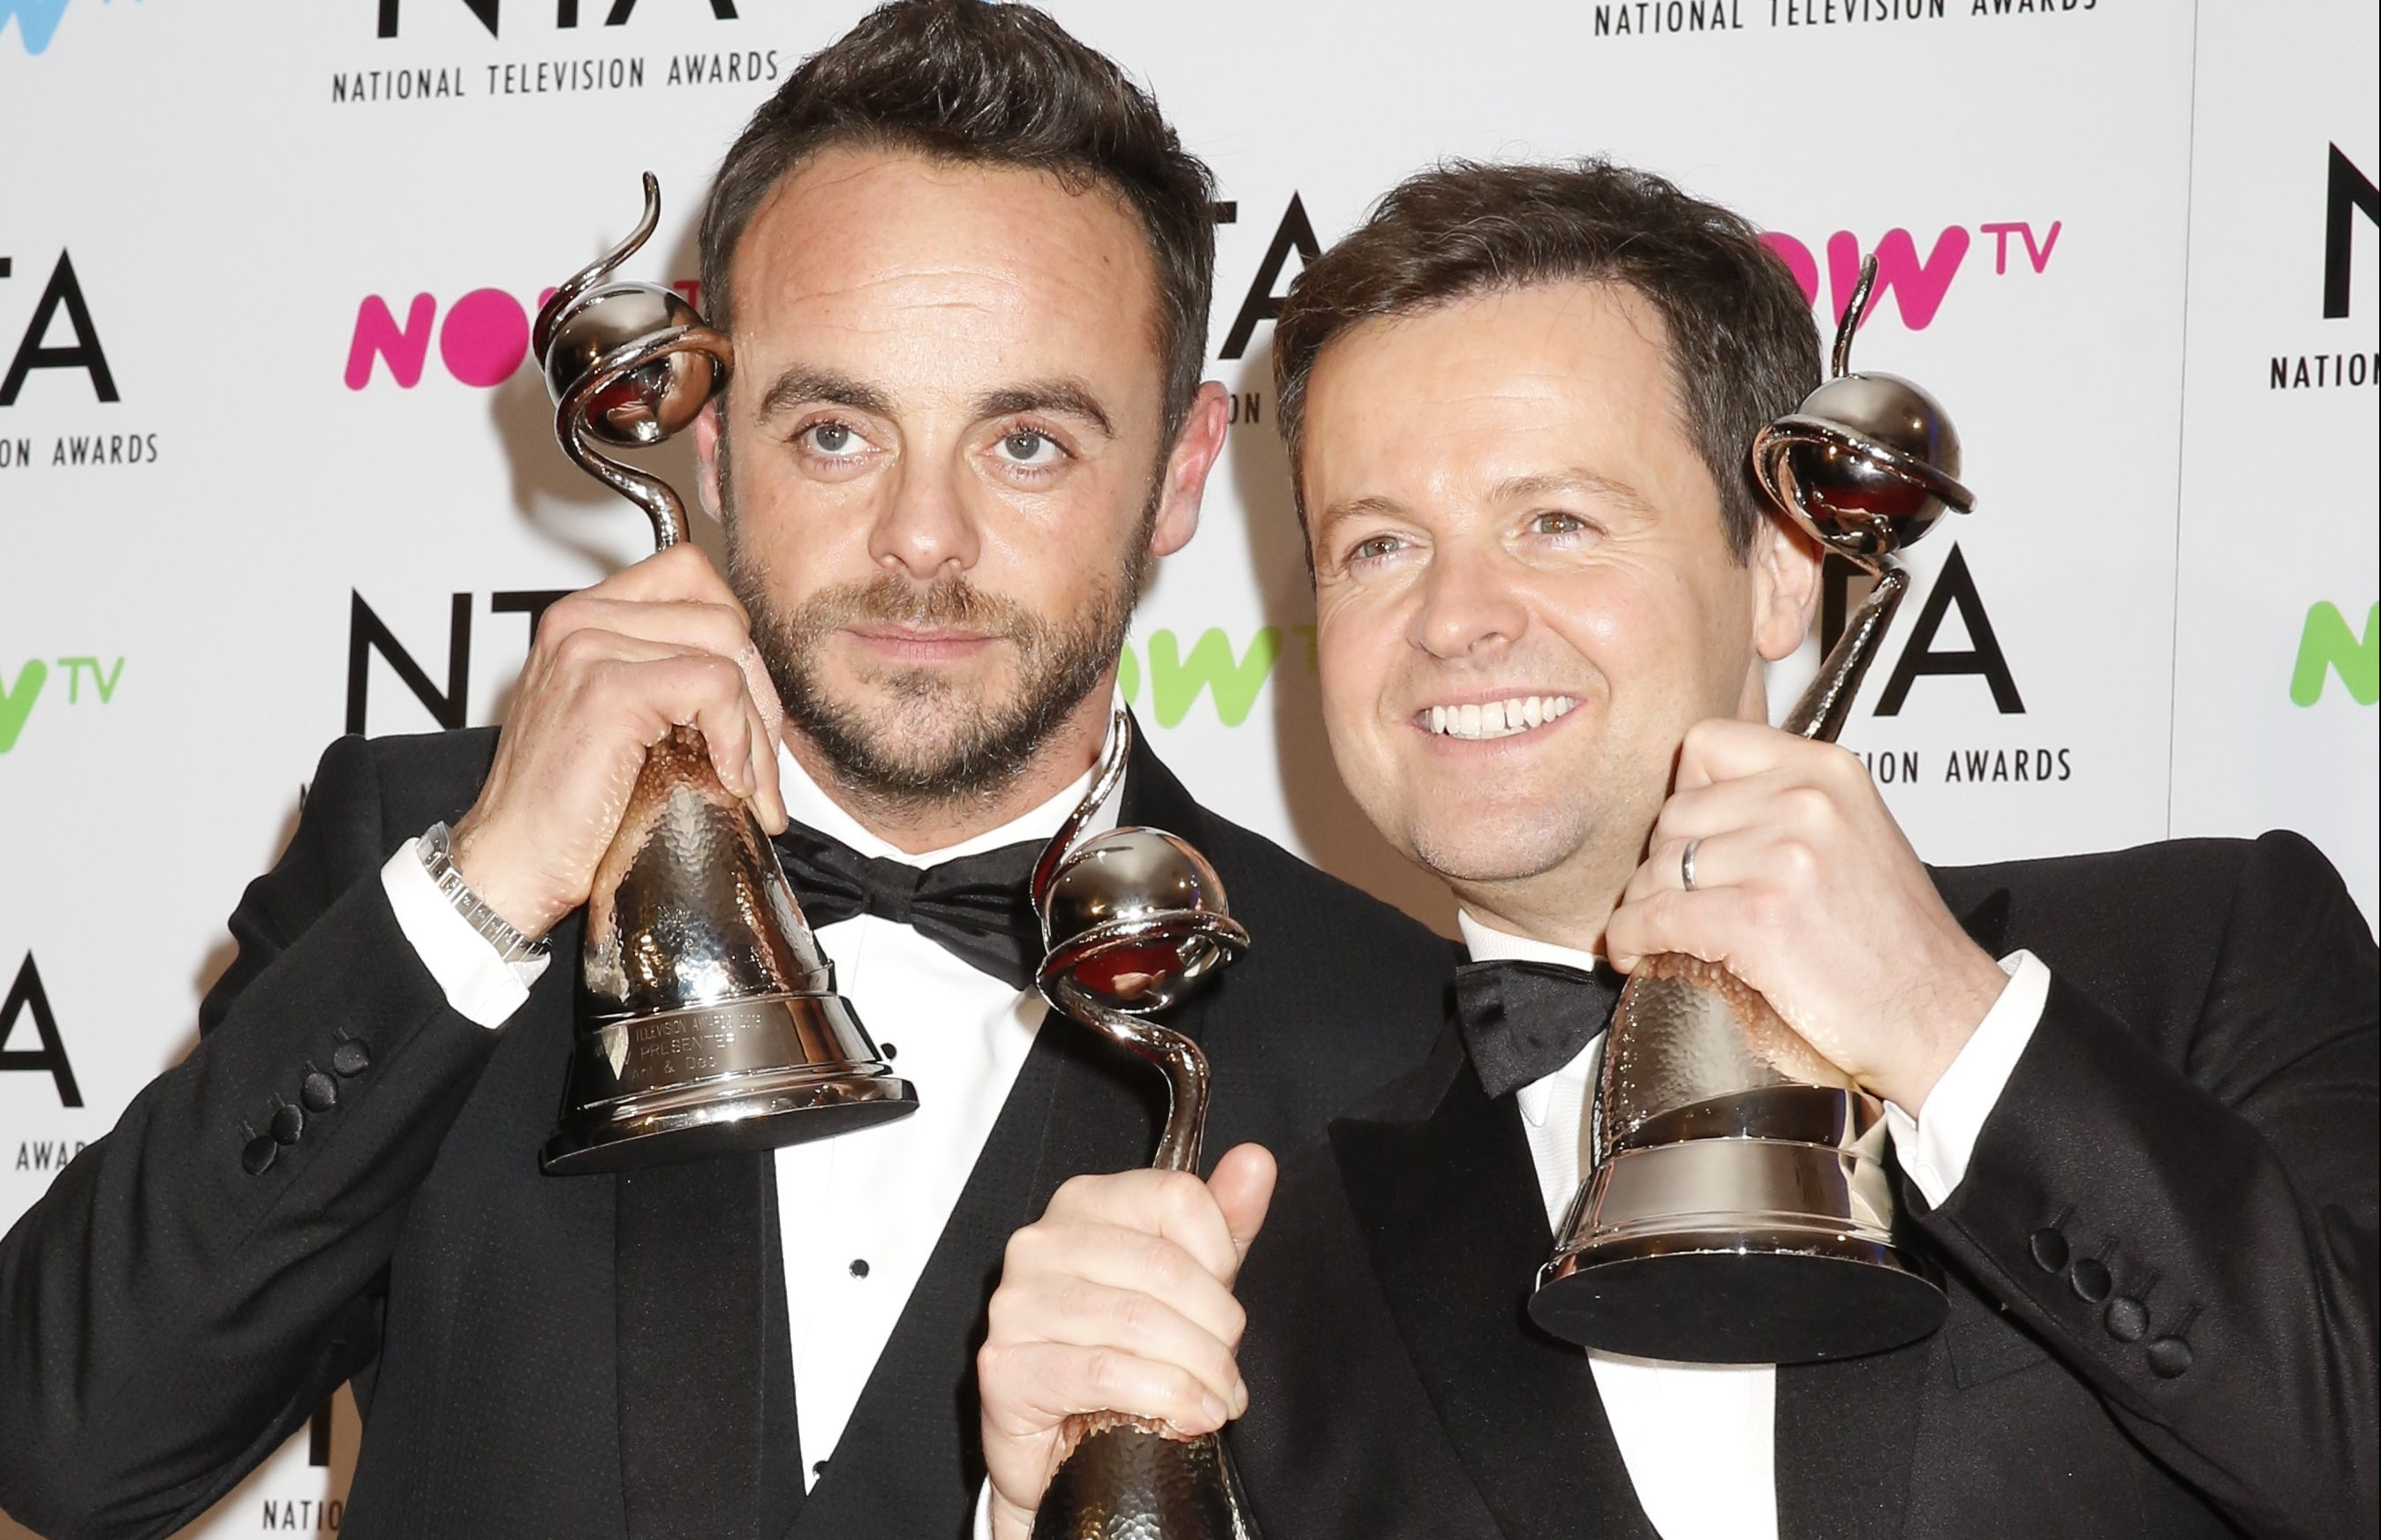 Ant McPartlin Slams Claims He's Stressed Ahead Of NTA Awards